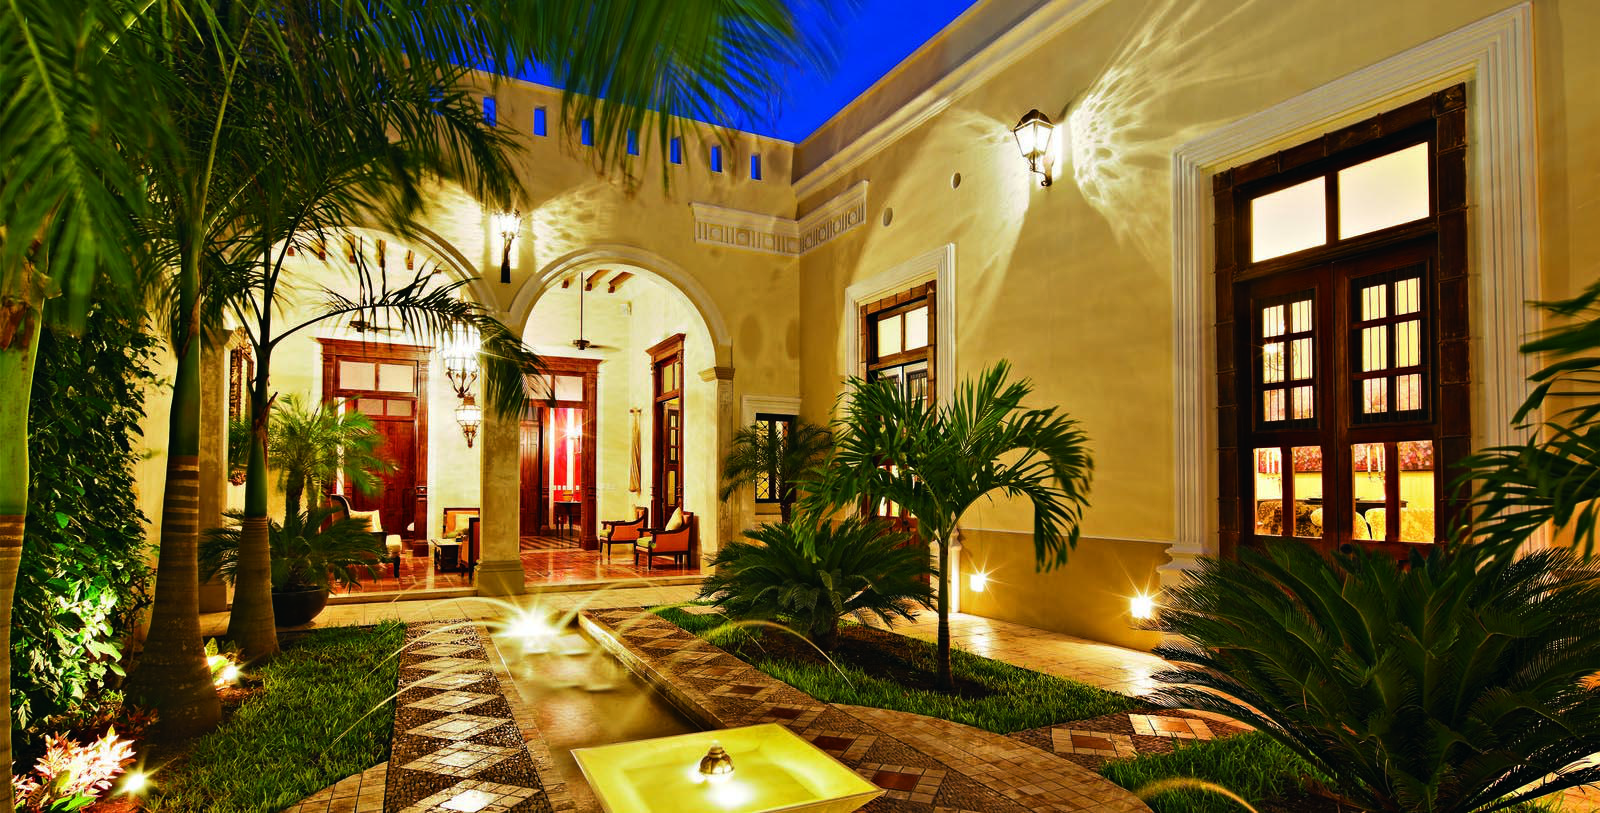 Image of courtyard exterior Casa Lecanda, 1900s, Member of Historic Hotels Worldwide, in Merida, Mexico, Special Offers, Discounted Rates, Families, Romantic Escape, Honeymoons, Anniversaries, Reunions